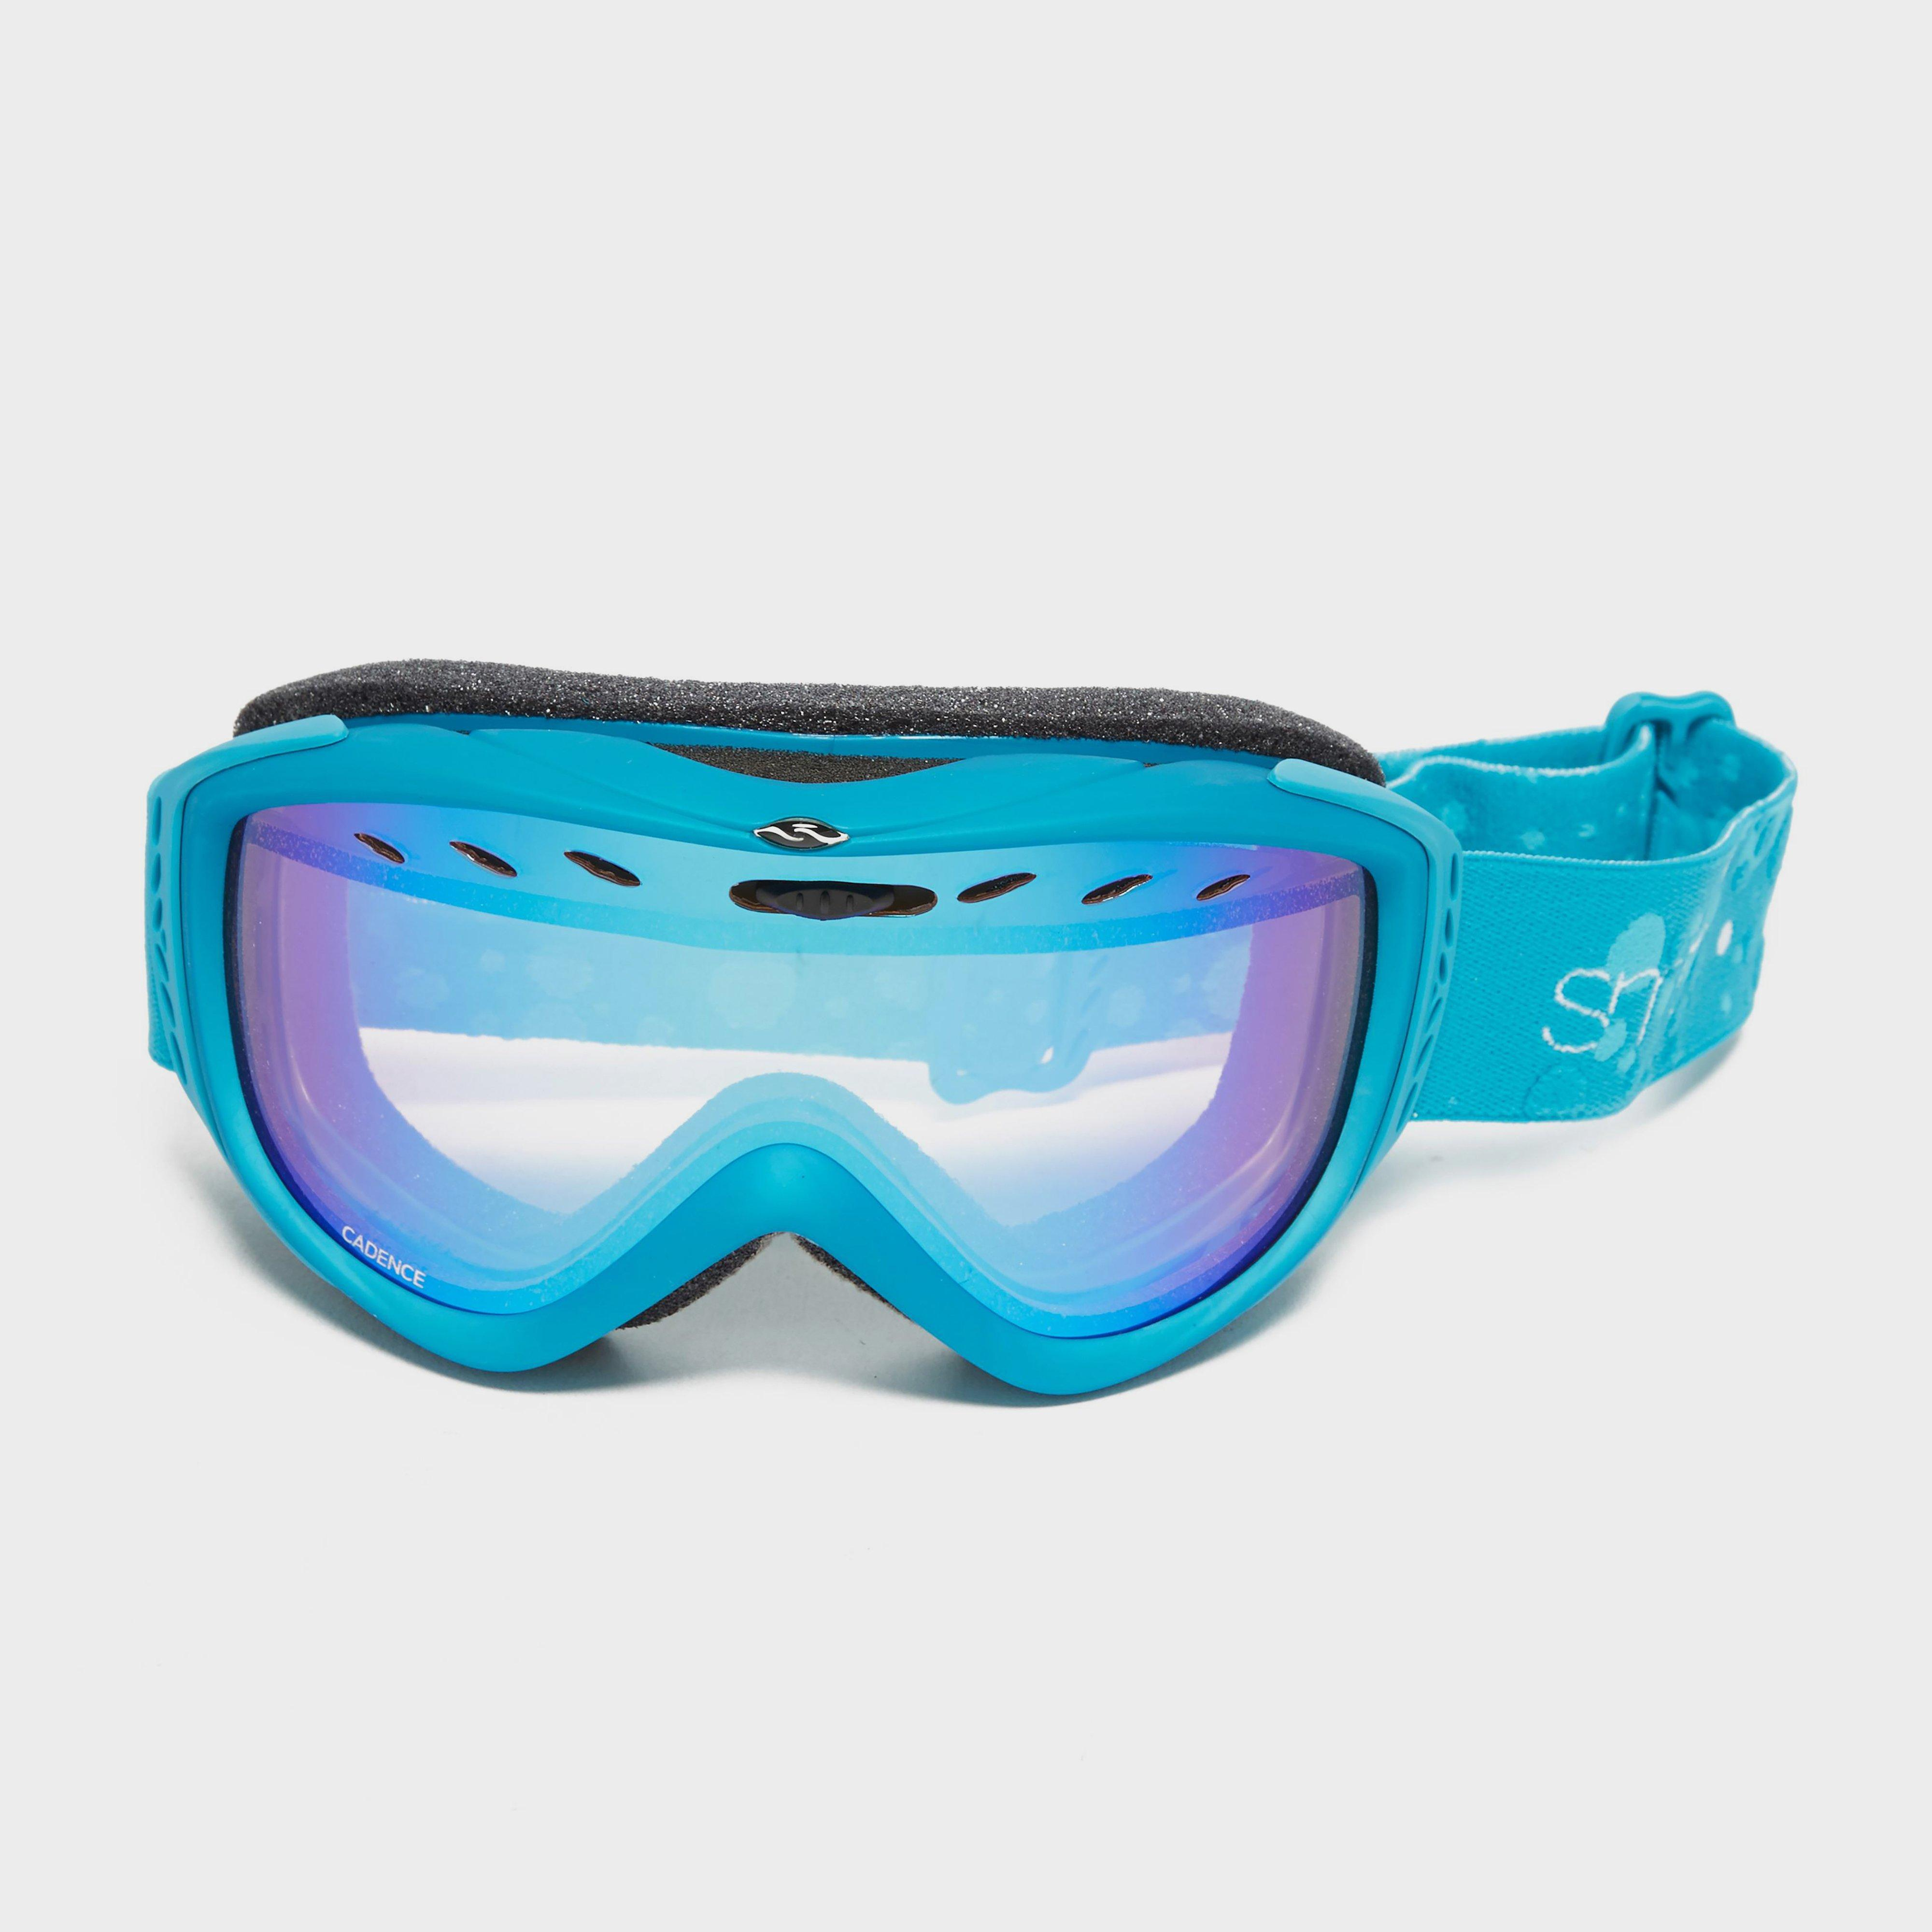 Smith Optics Cadence Snow Goggles, Blue